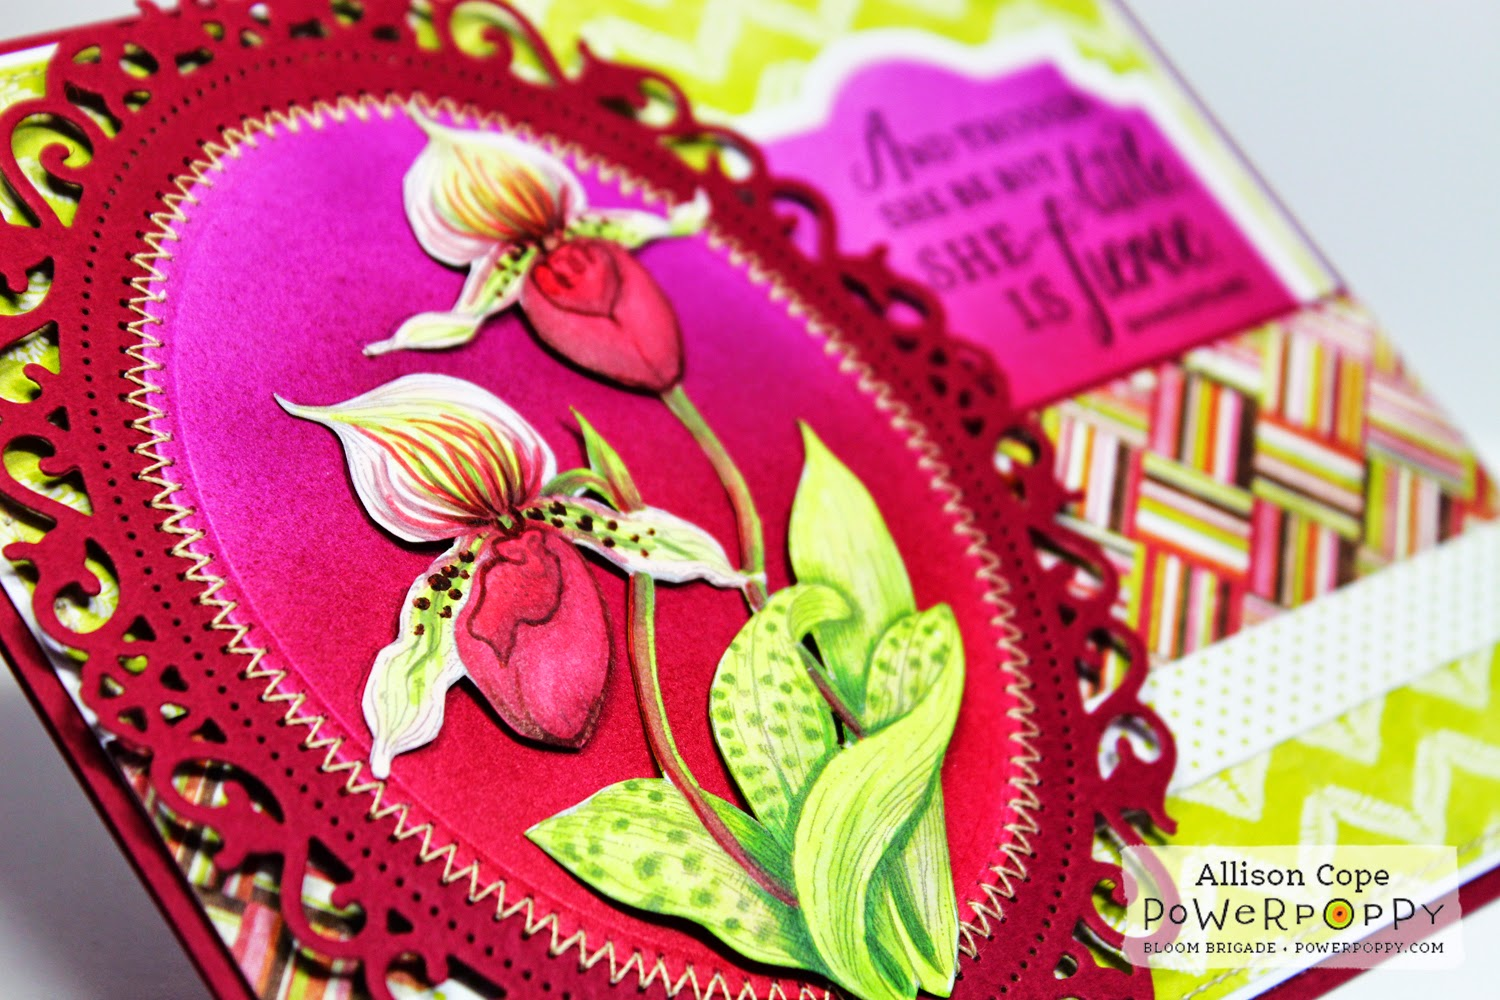 Orchids Rock by Allison Cope for Power Poppy